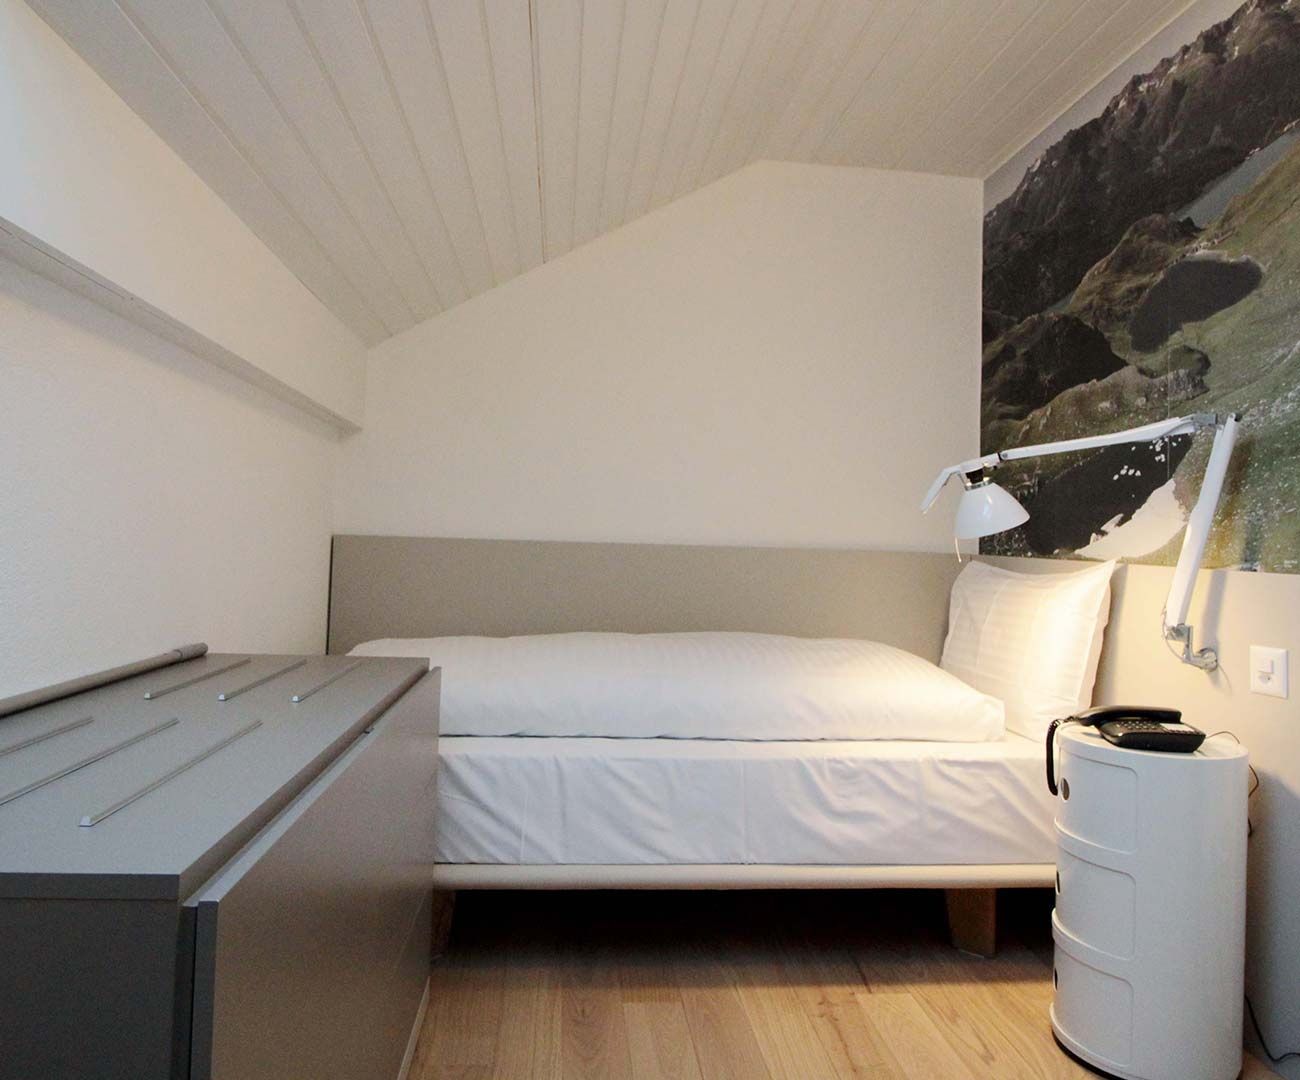 Dachschräge Container Hotel Forni Airolo